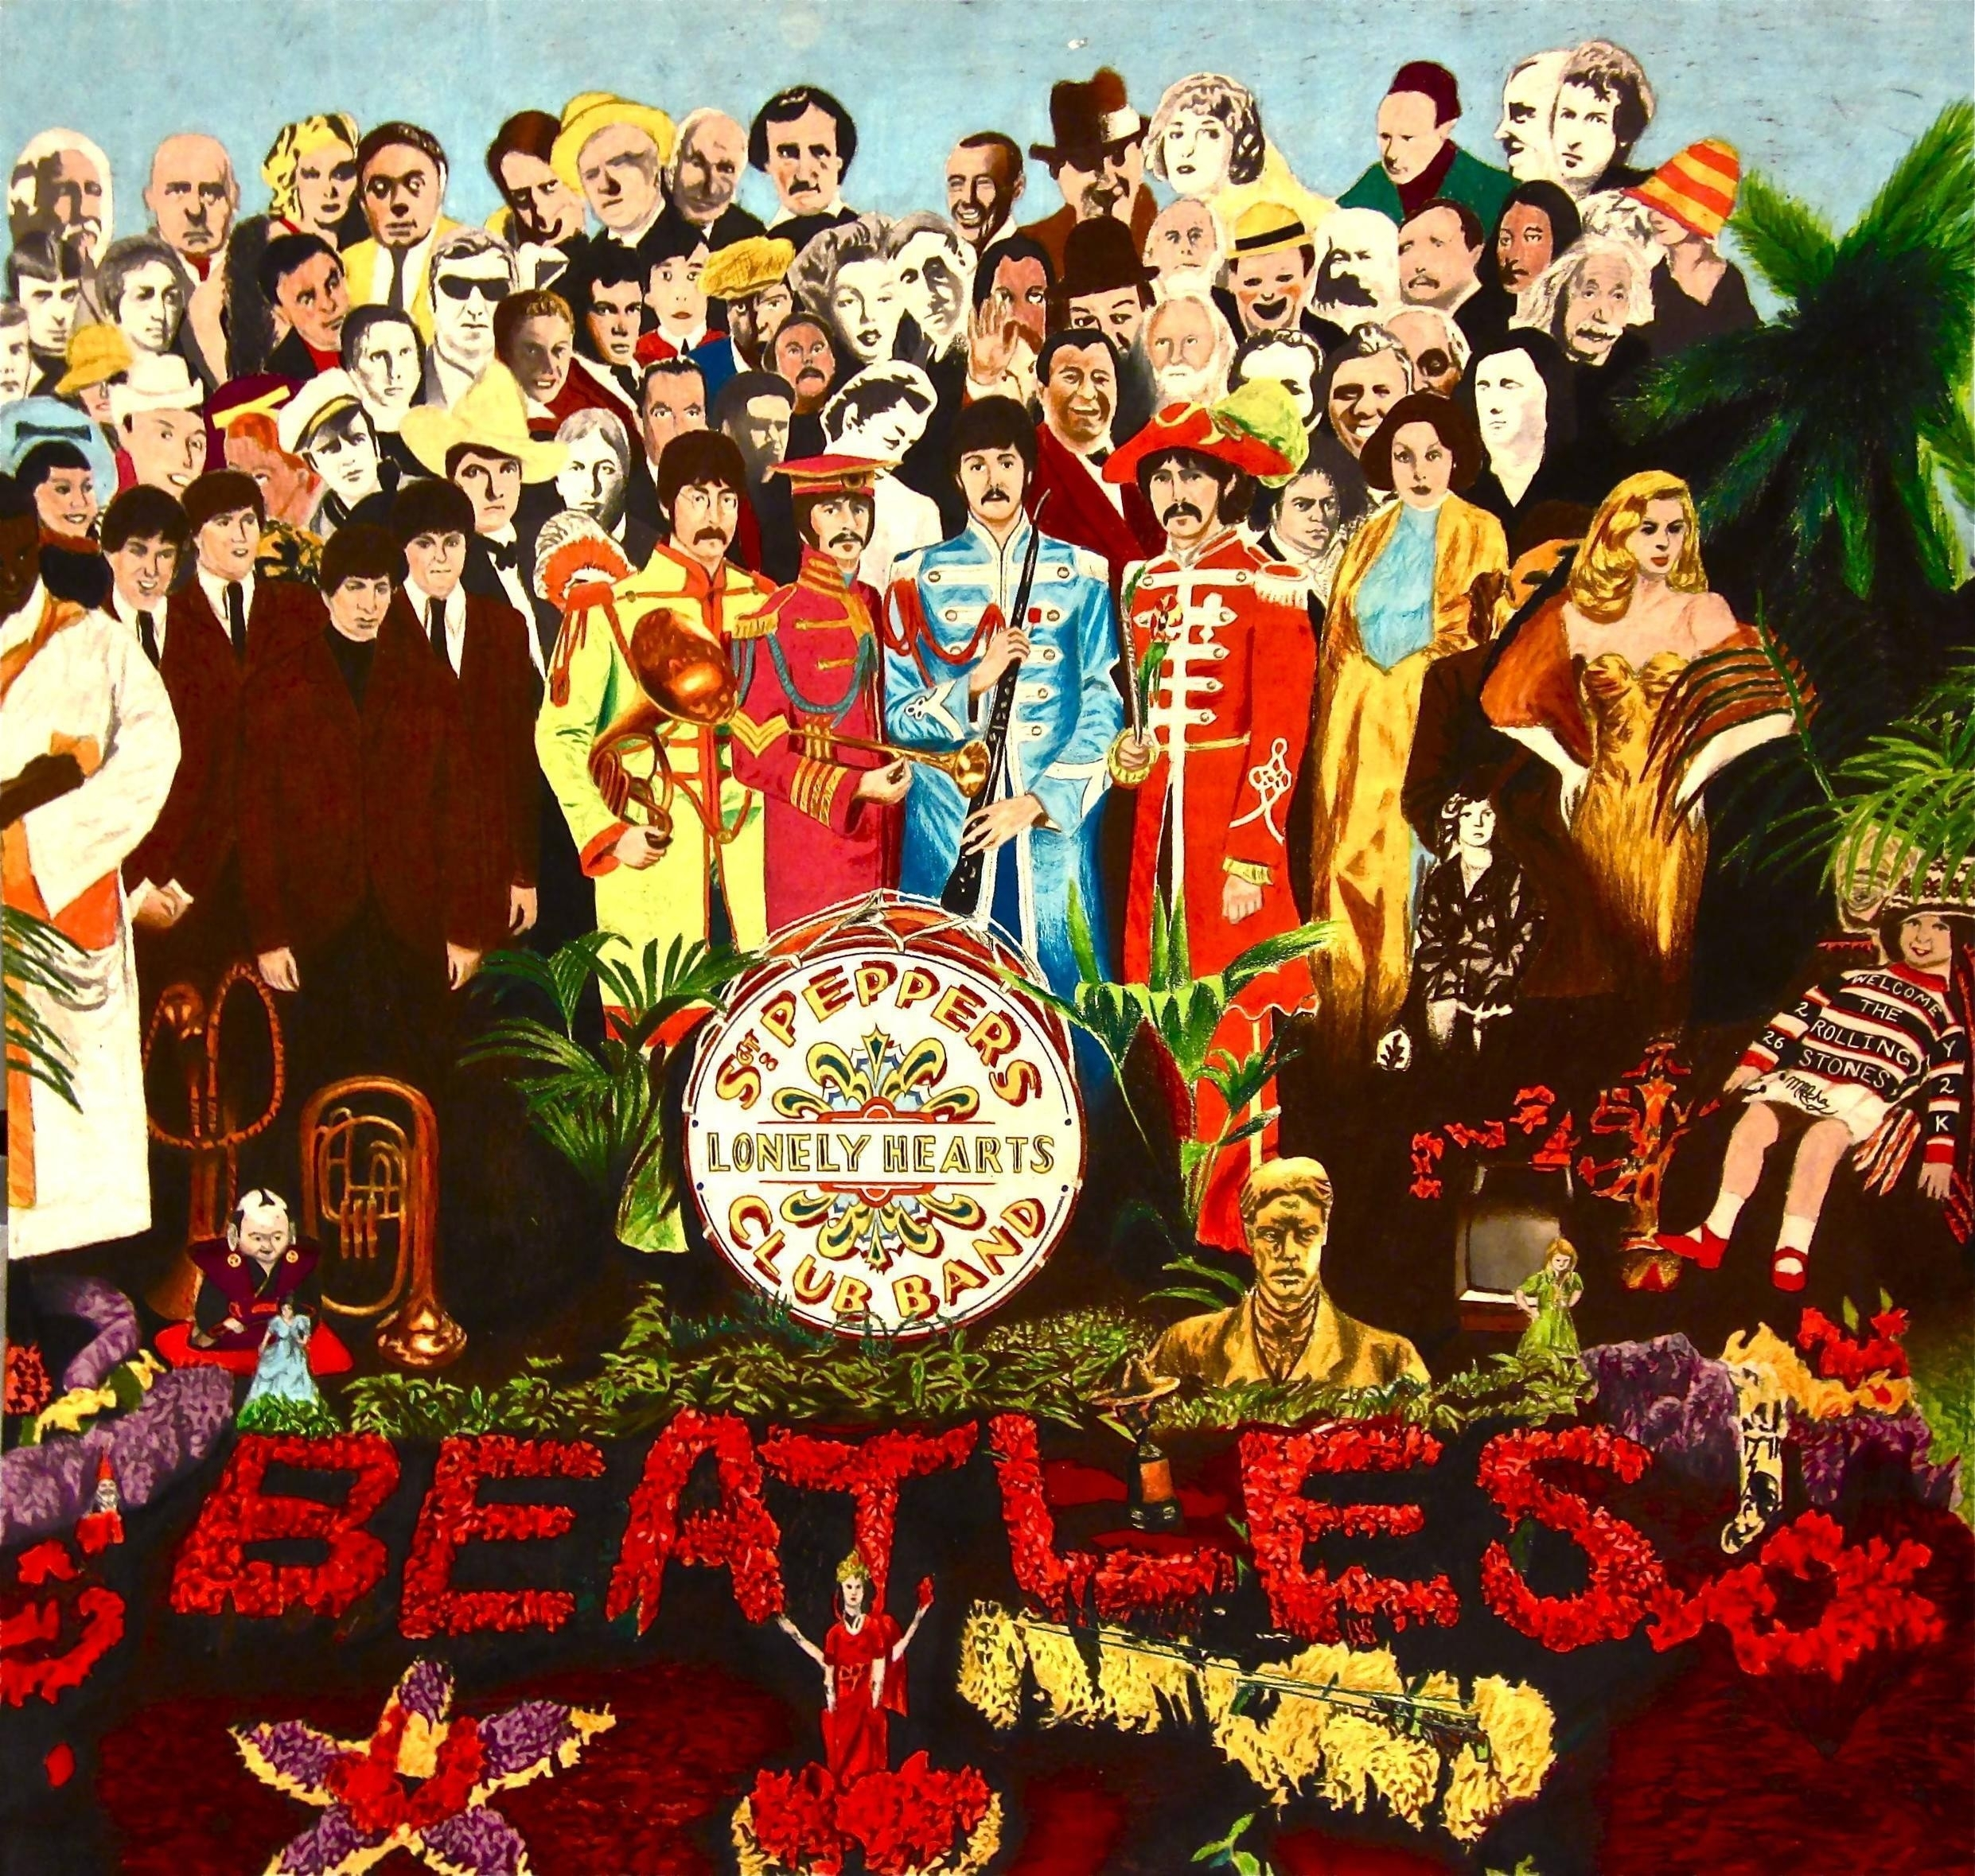 sgt peppers lonely heart club iphone wallpaper - wallpaper rocket